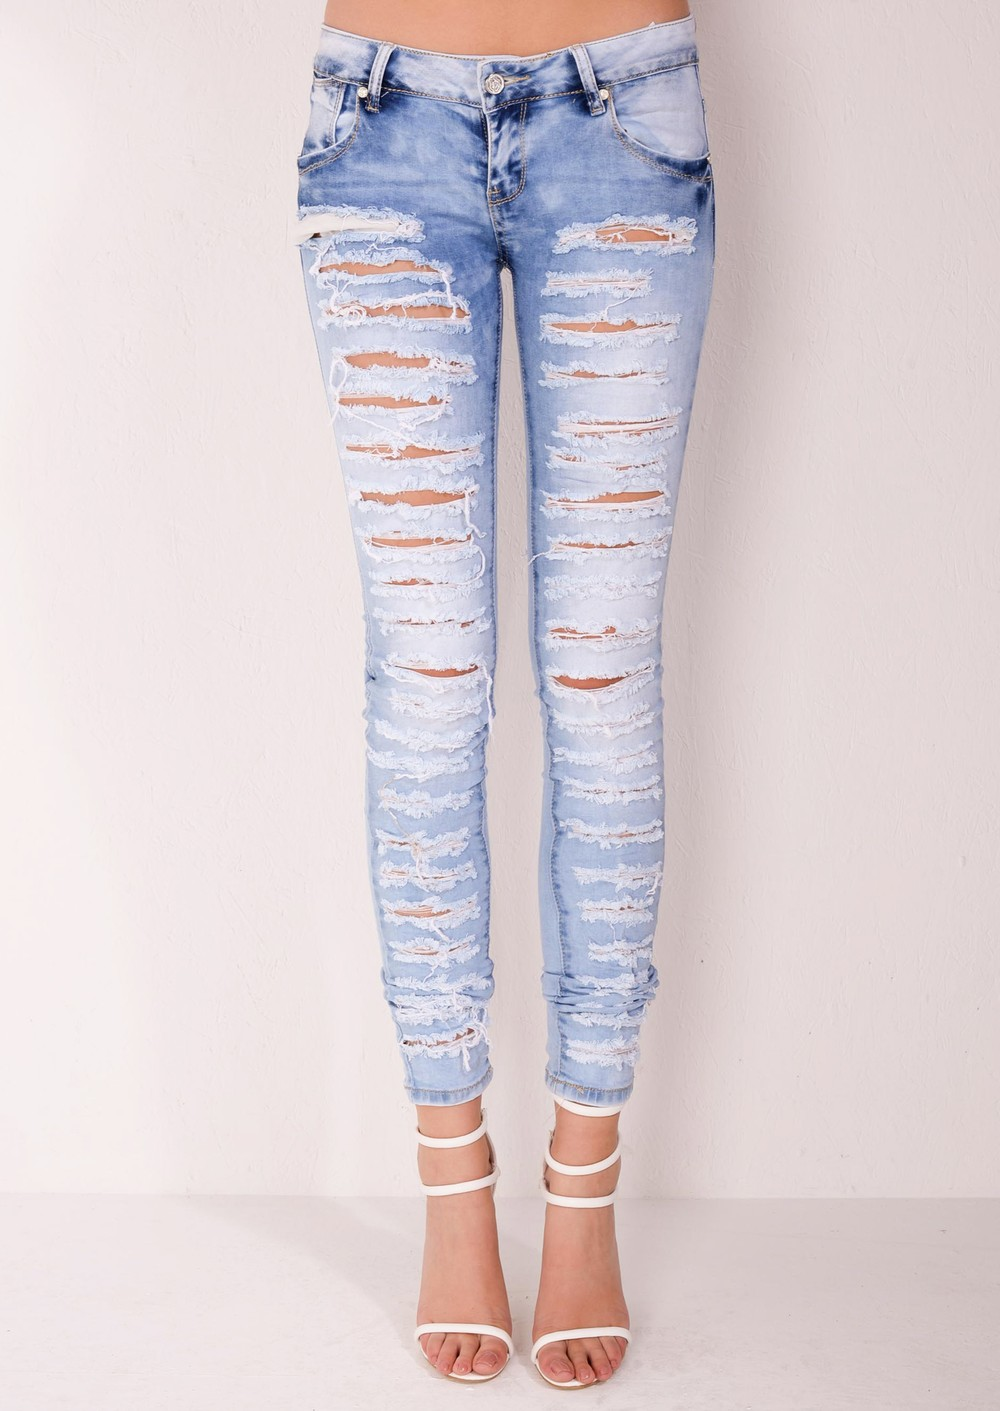 Denim Jeans Ripped | Jeans To